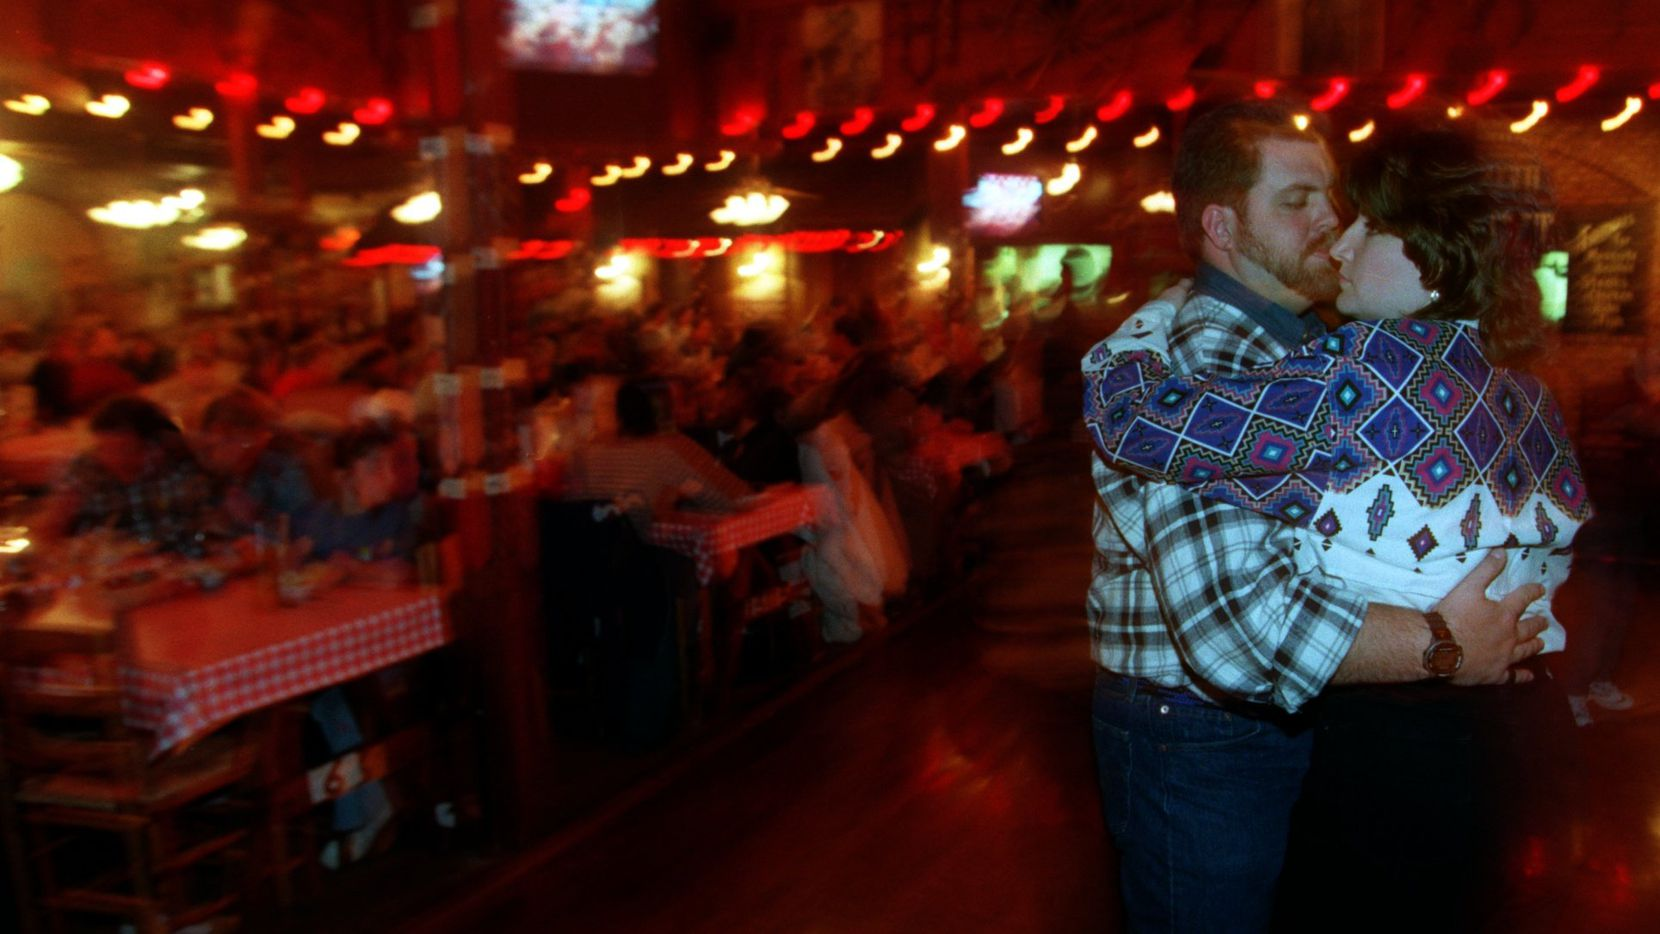 Camden and Dana Stone danced the night away at the Trail Dust Steak House in Mesquite one night in 1999.